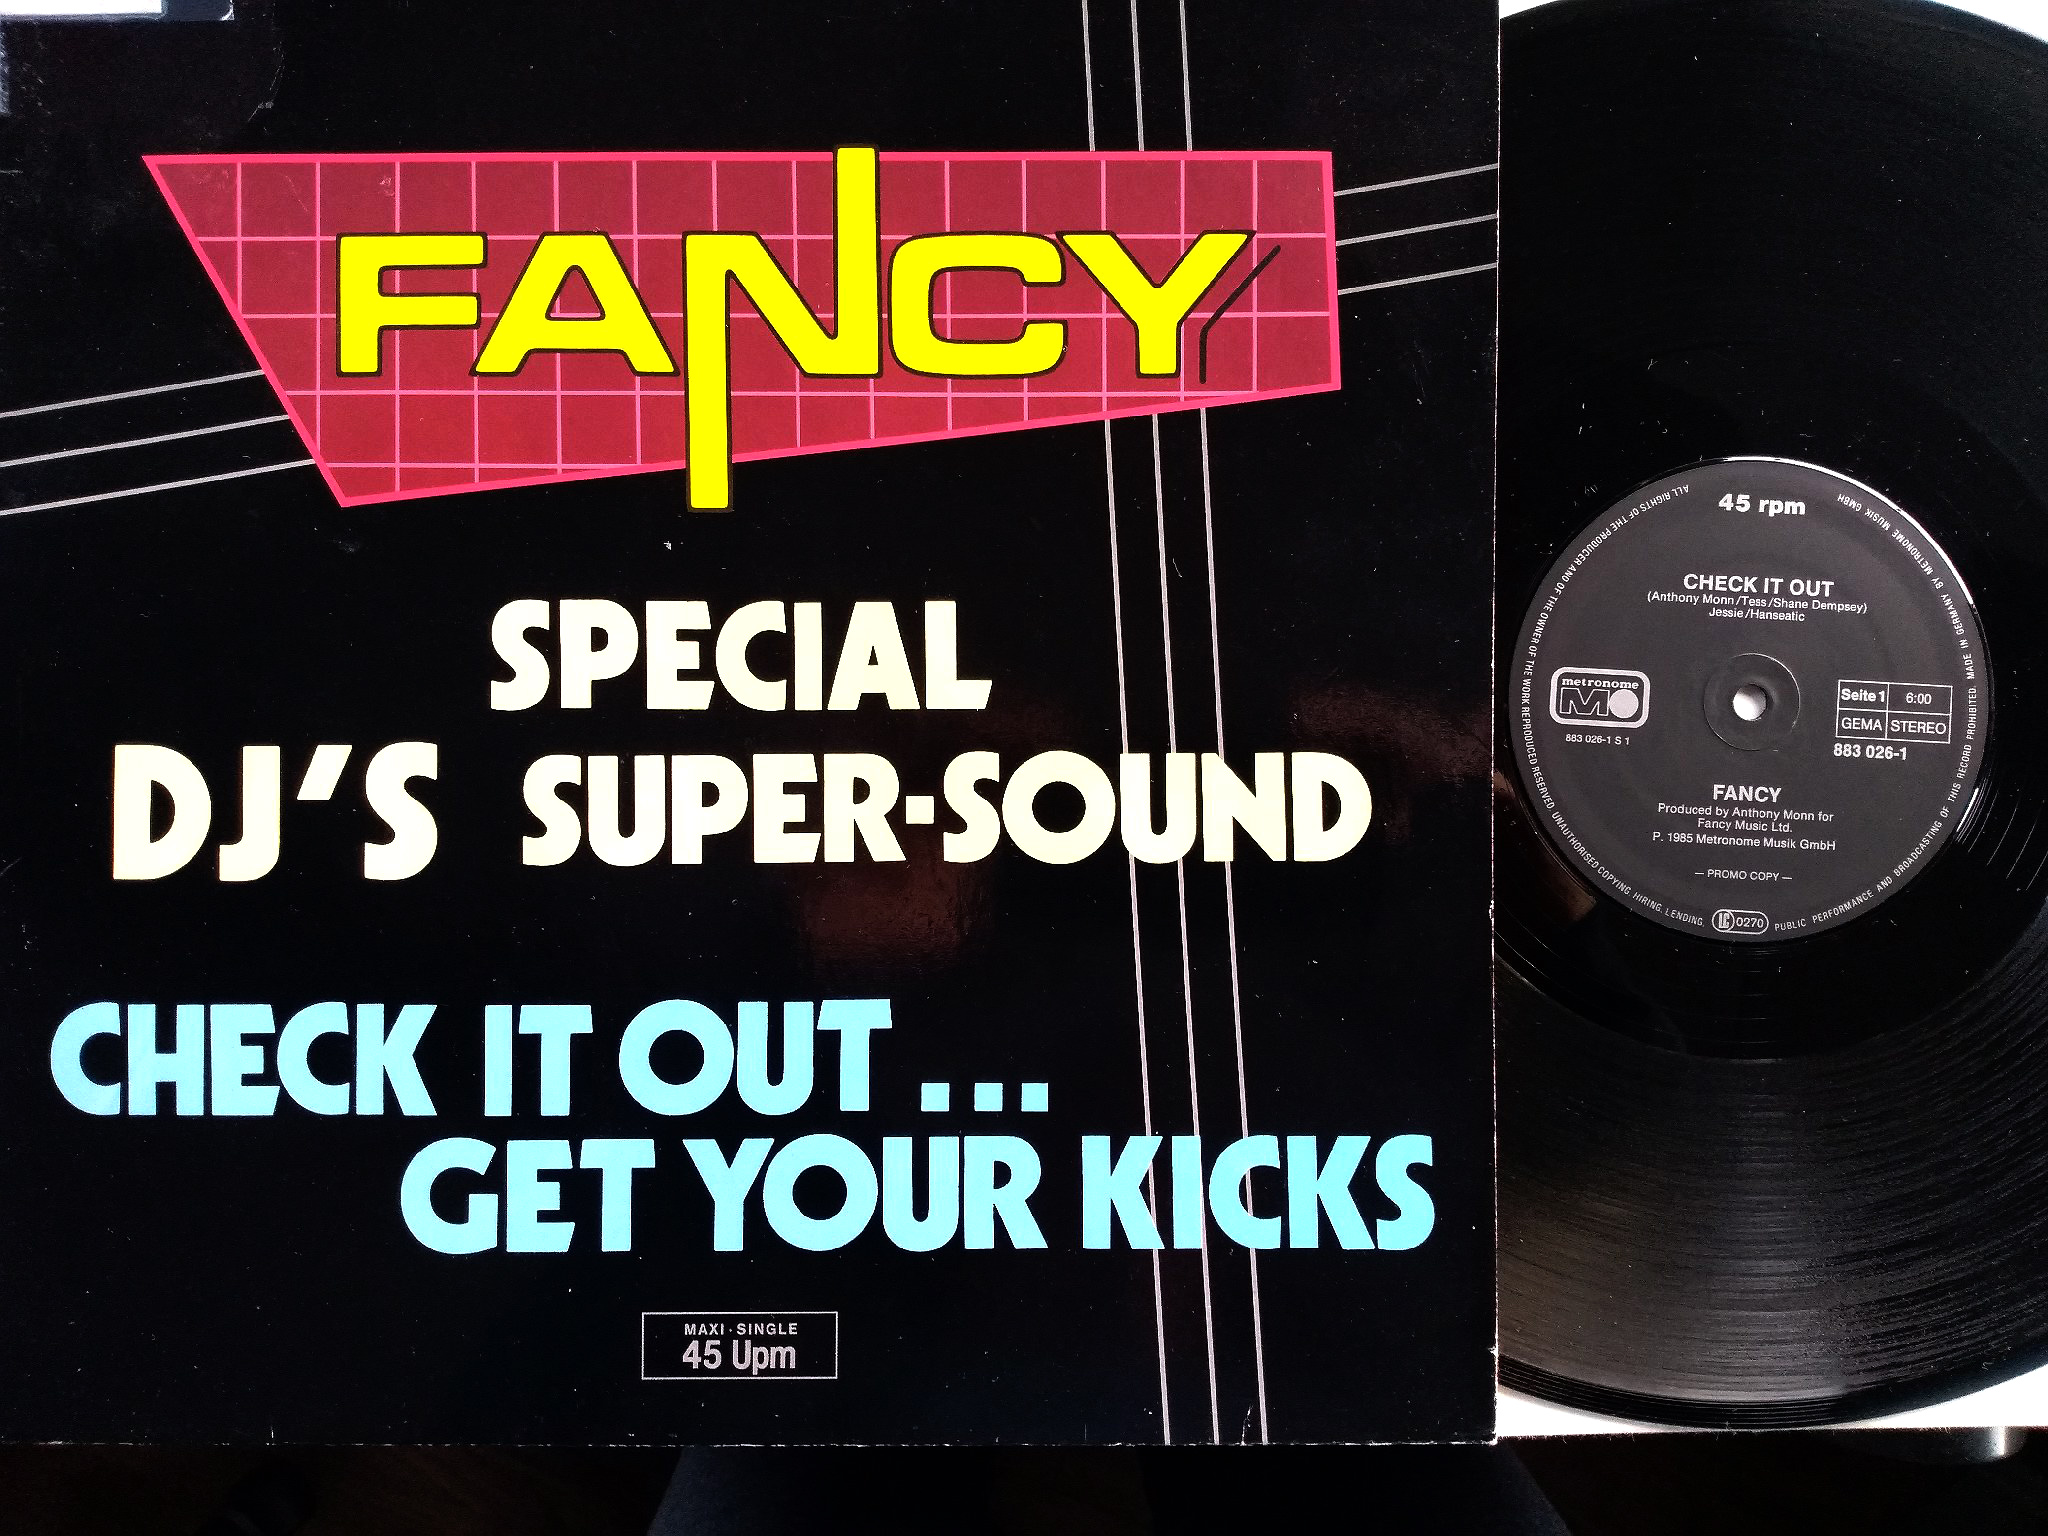 Fancy - Special DJ'S Super-Sound